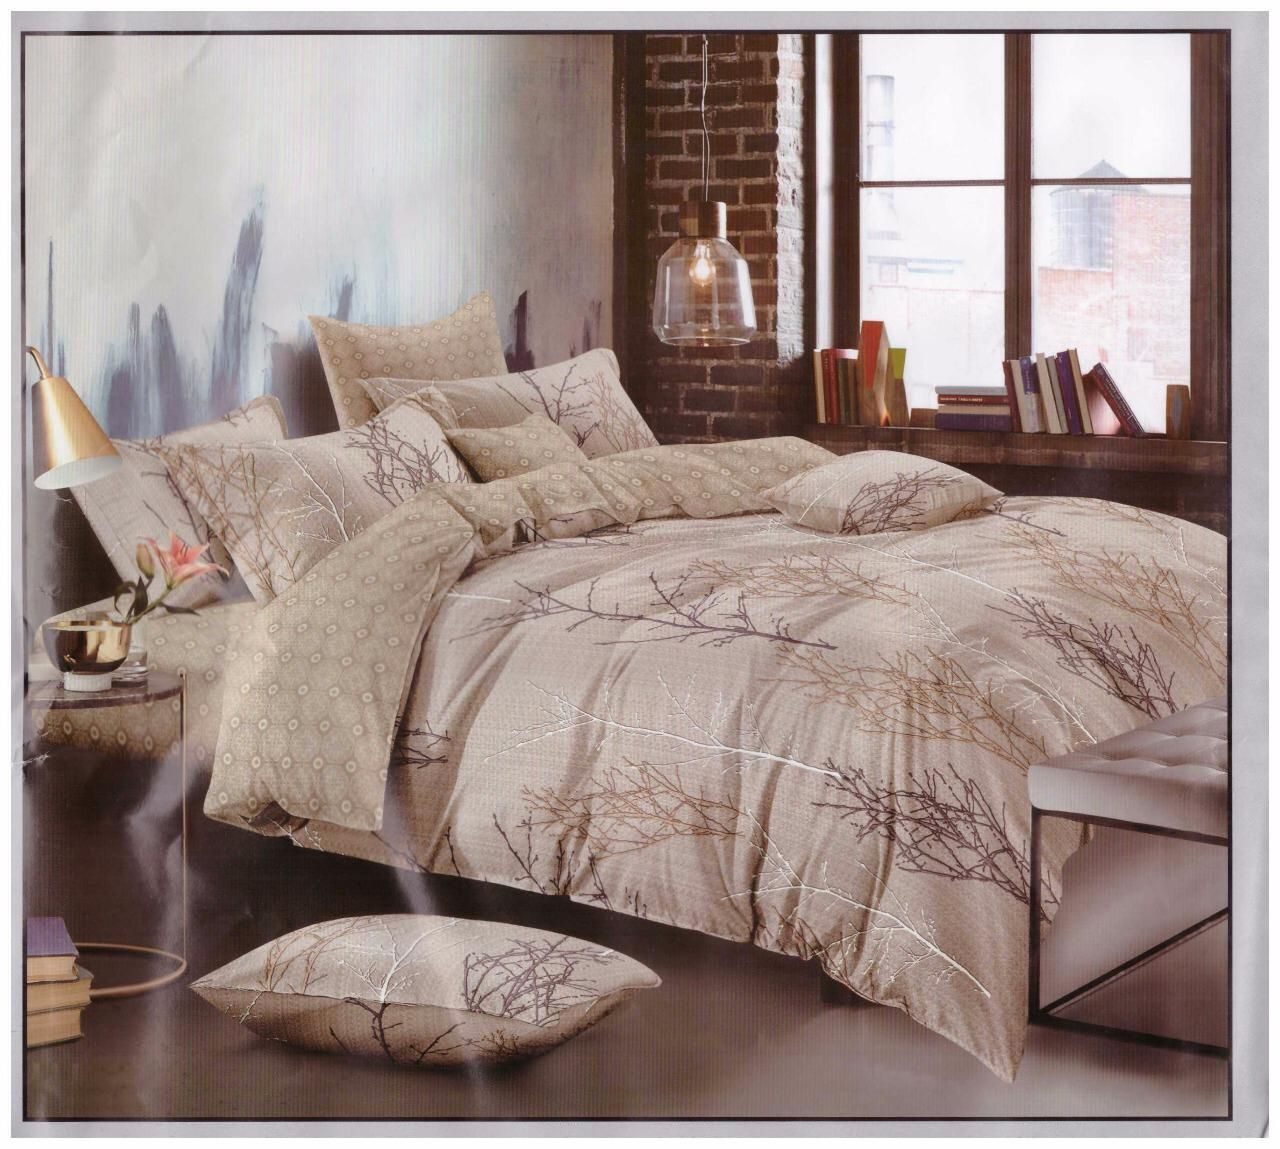 The Export World Is Wholesale King Size Comforter Sets